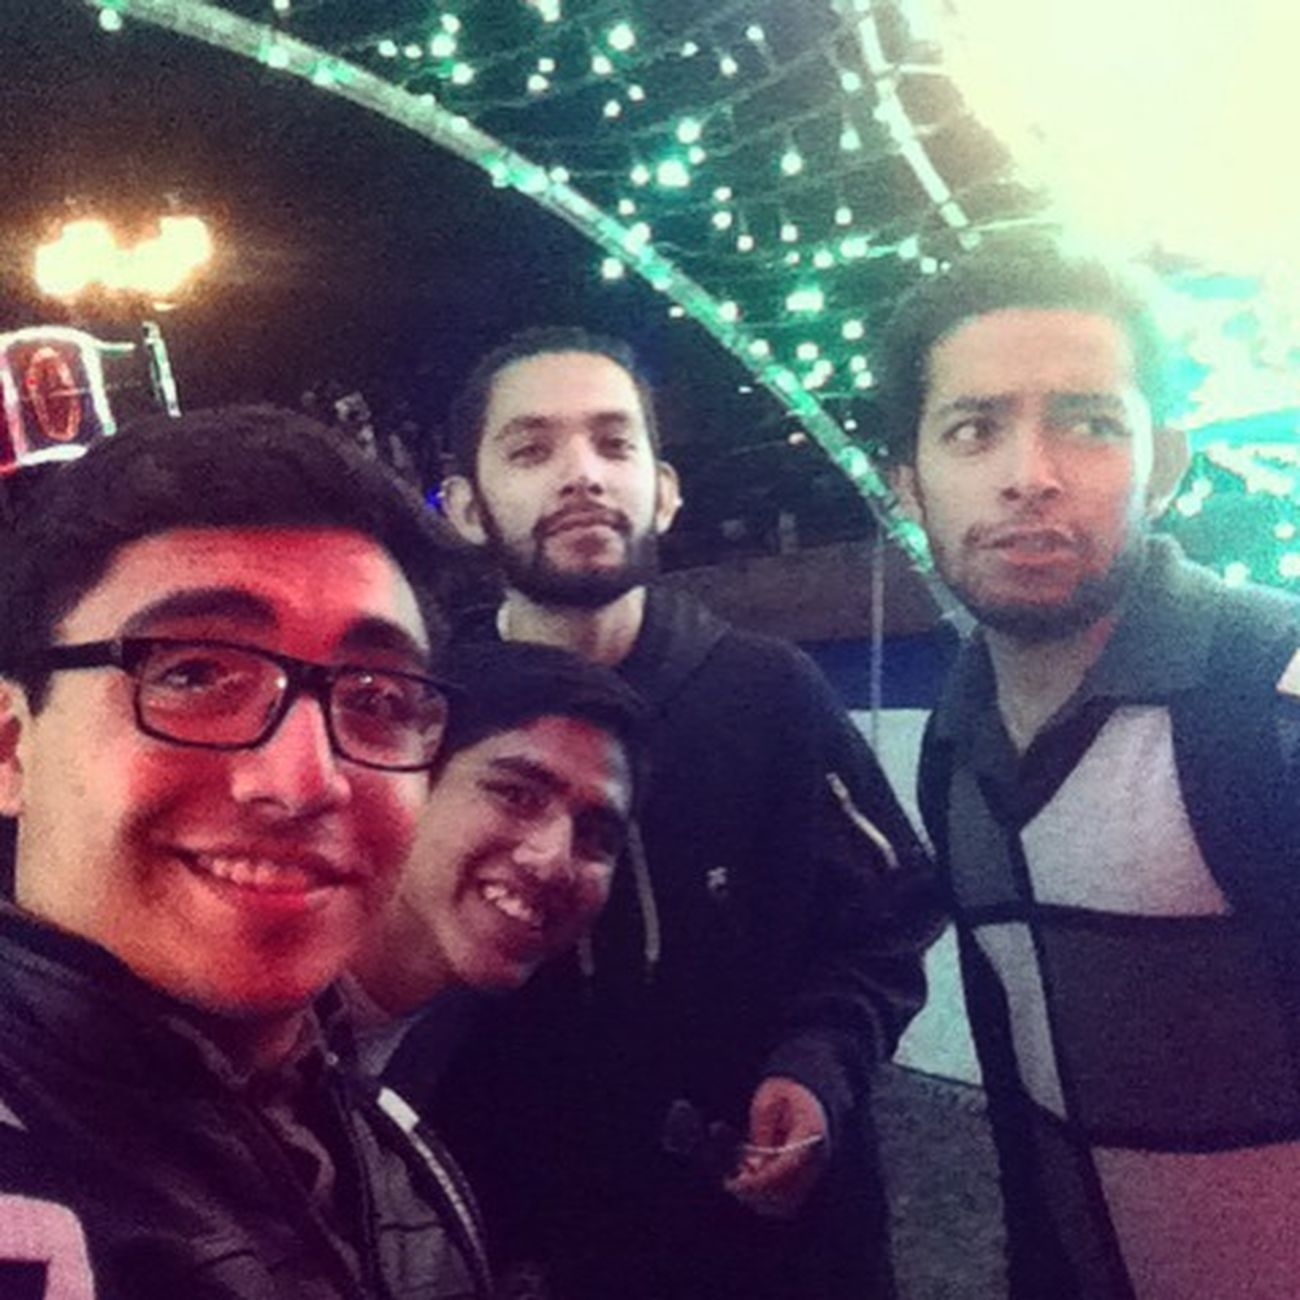 Ehhh... Night Friends Nightlights Puebla Weirdos Weirdfaces